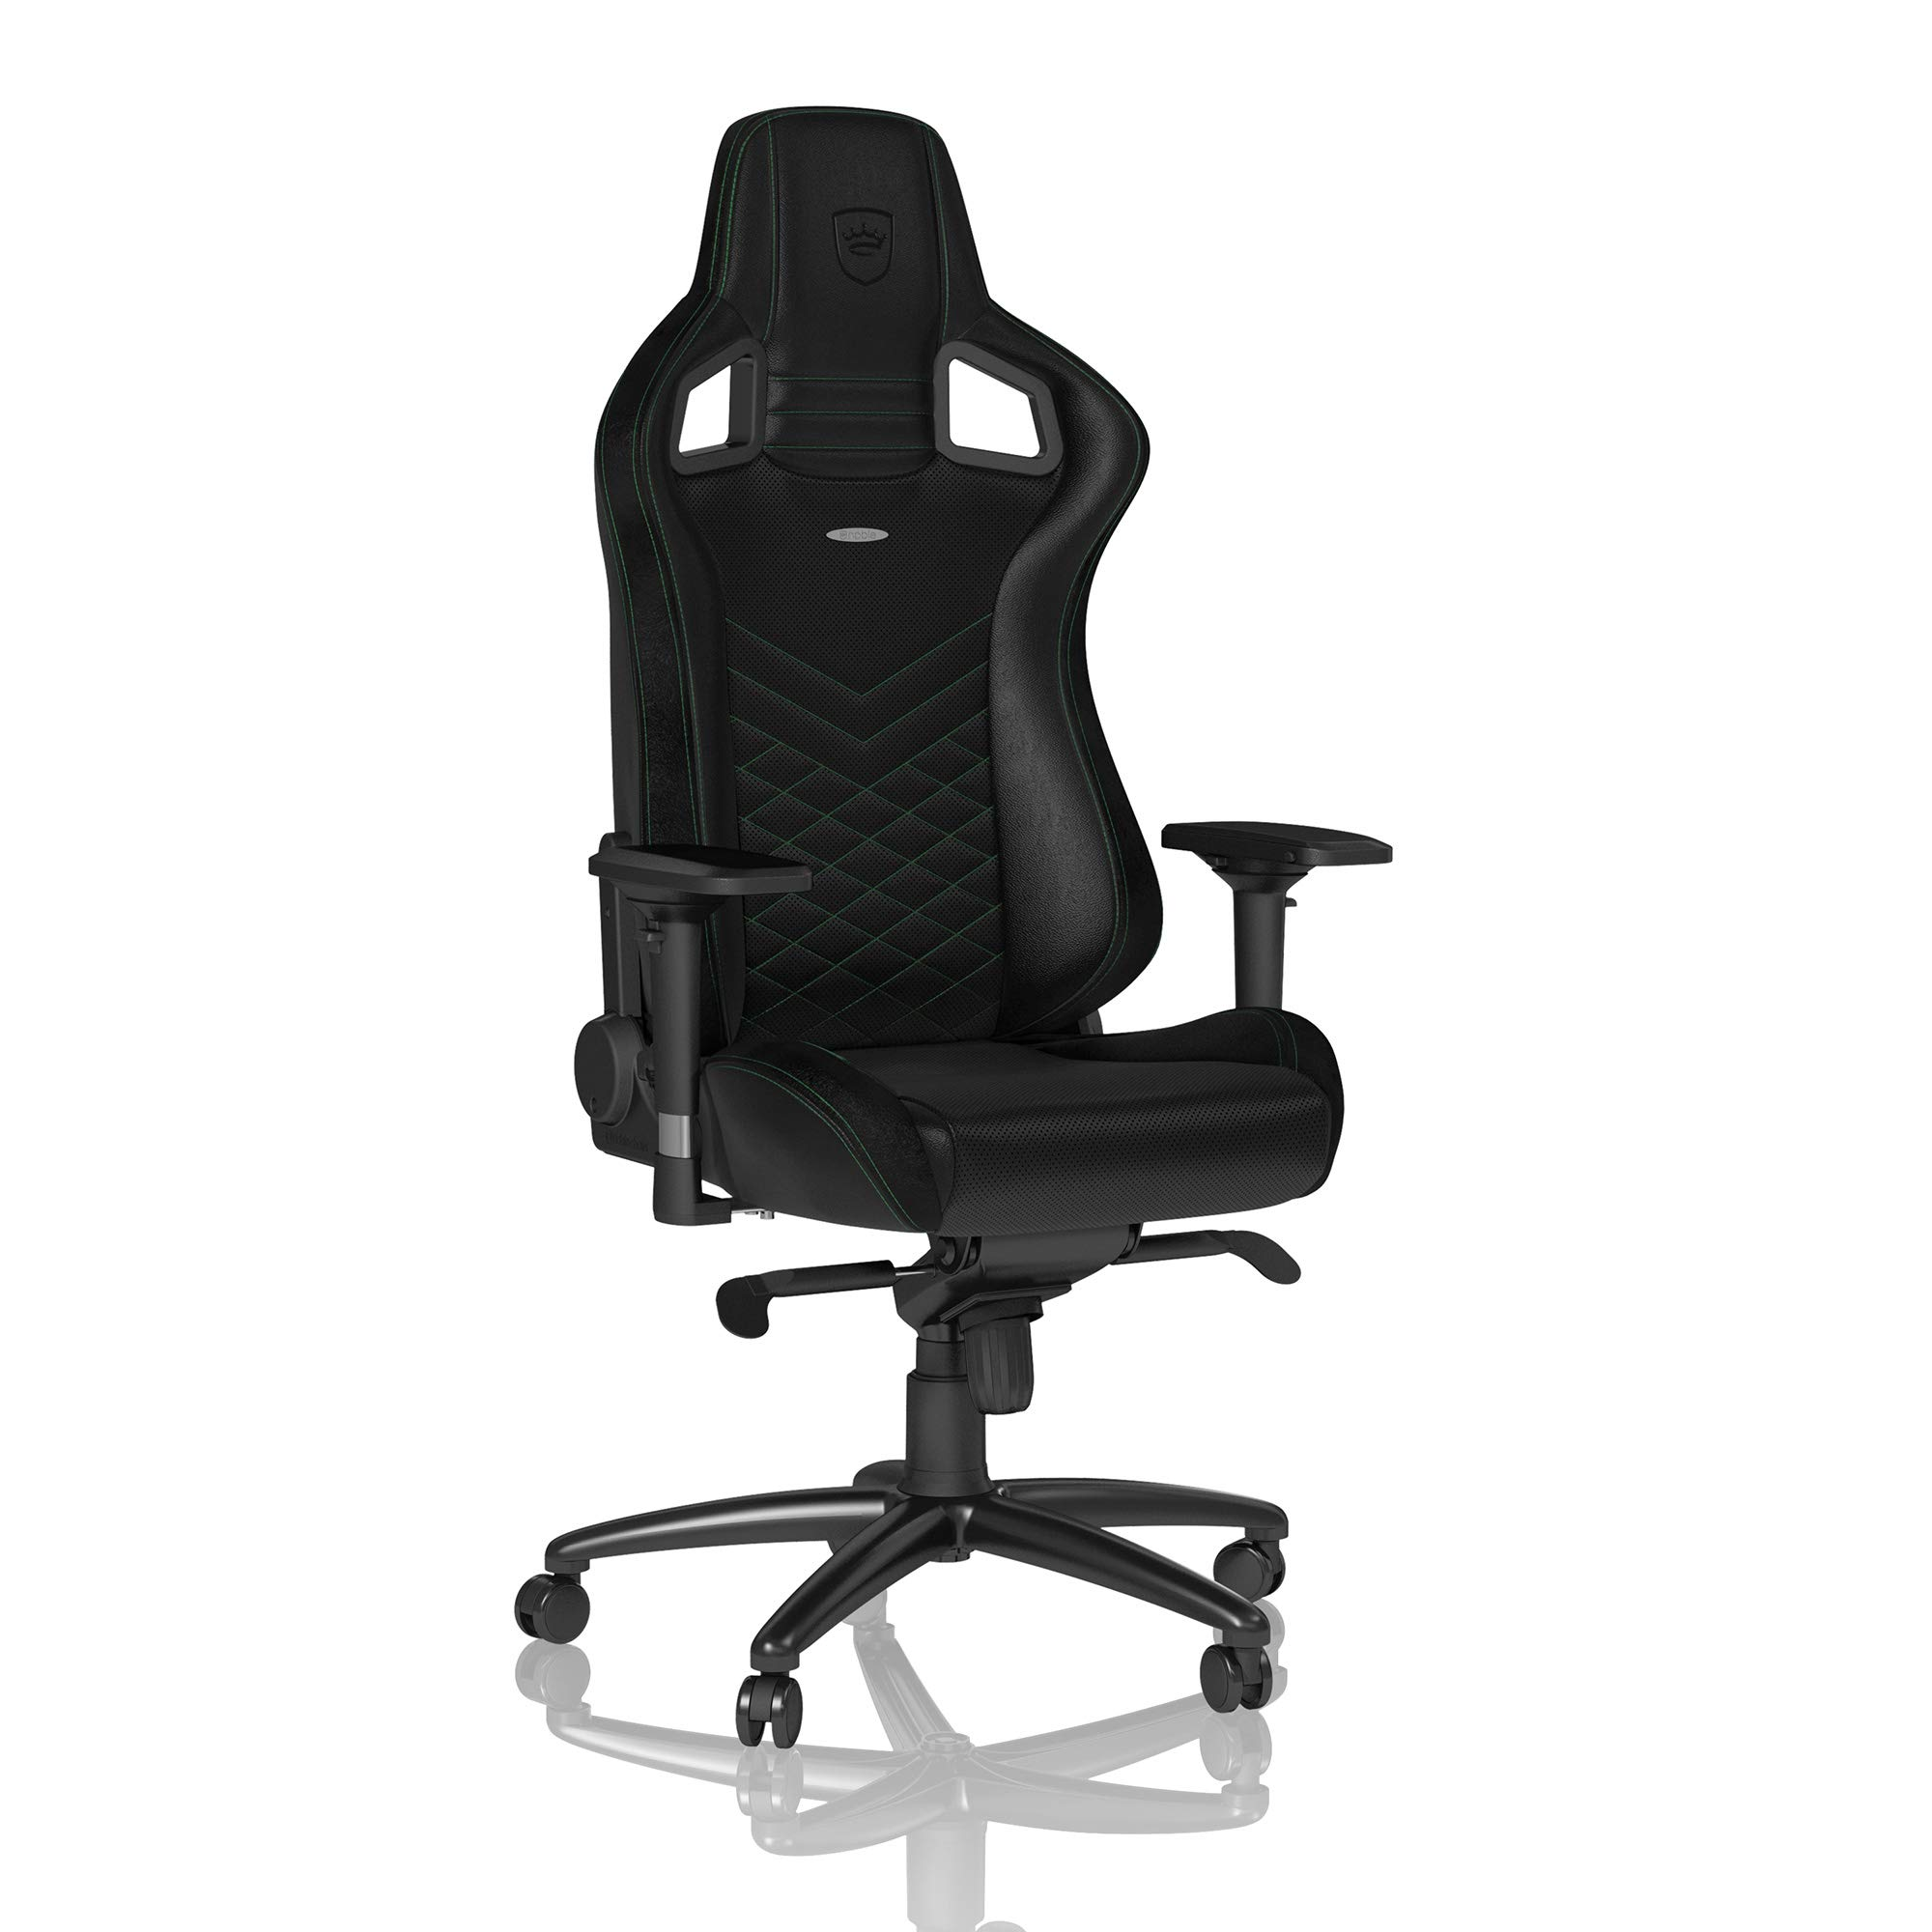 noblechairs Epic Gaming Chair - Office Chair - Desk Chair - PU Faux Leather - 265 lbs - 135° Reclinable - Lumbar Support Cushion - Racing Seat Design - Black/Green